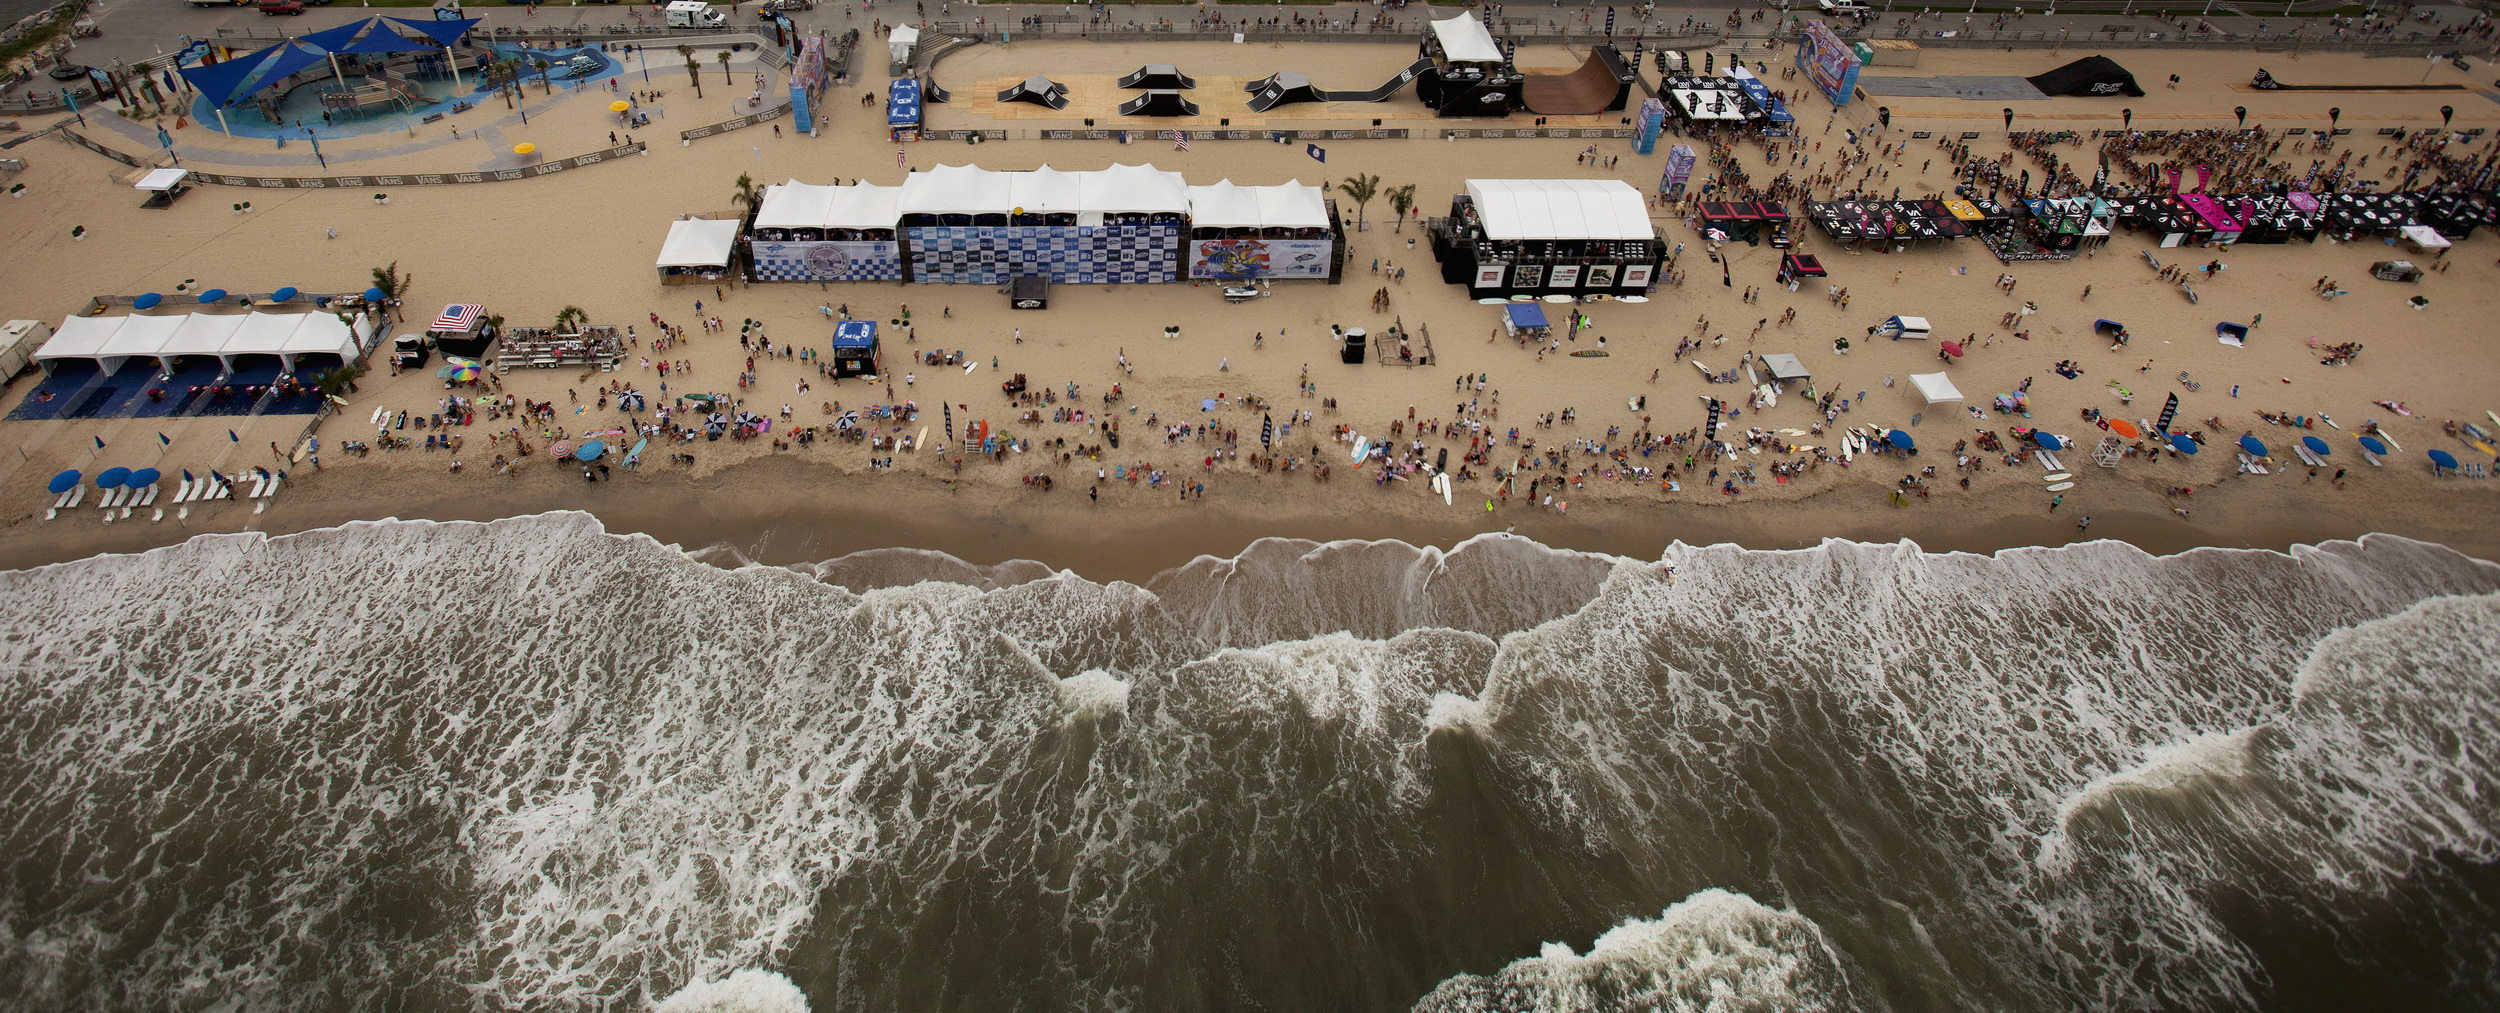 2012, Aerial photo of The 50th Coastal Edge East Coast Surfing Championships